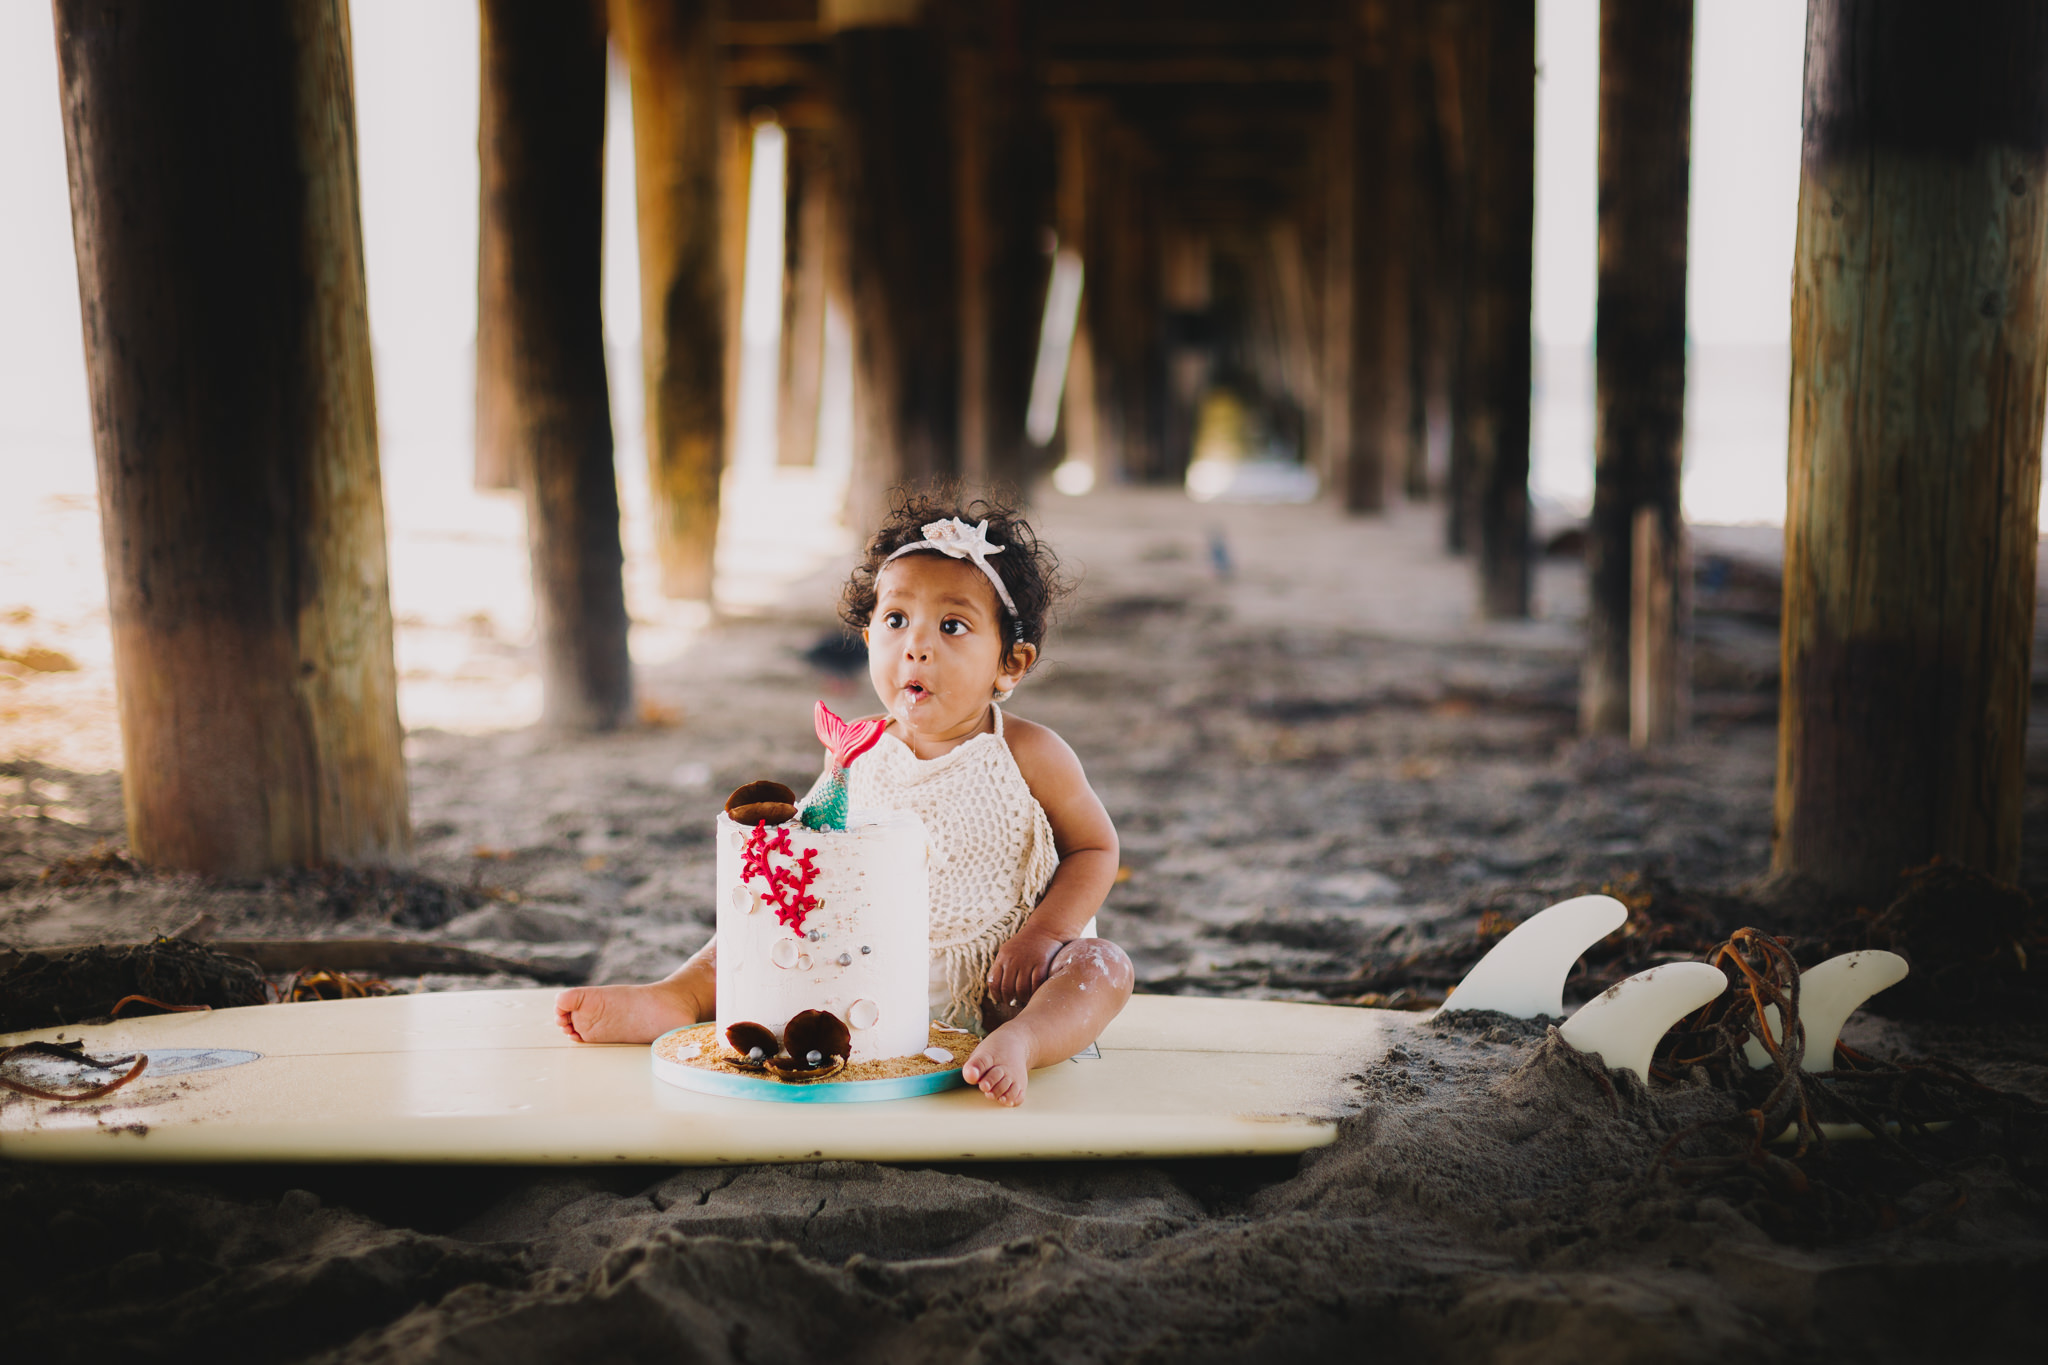 Archer Inspired Photography Cake Smash First Birthday Lifestyle Natural Light Documentary Family Photographer-21.jpg